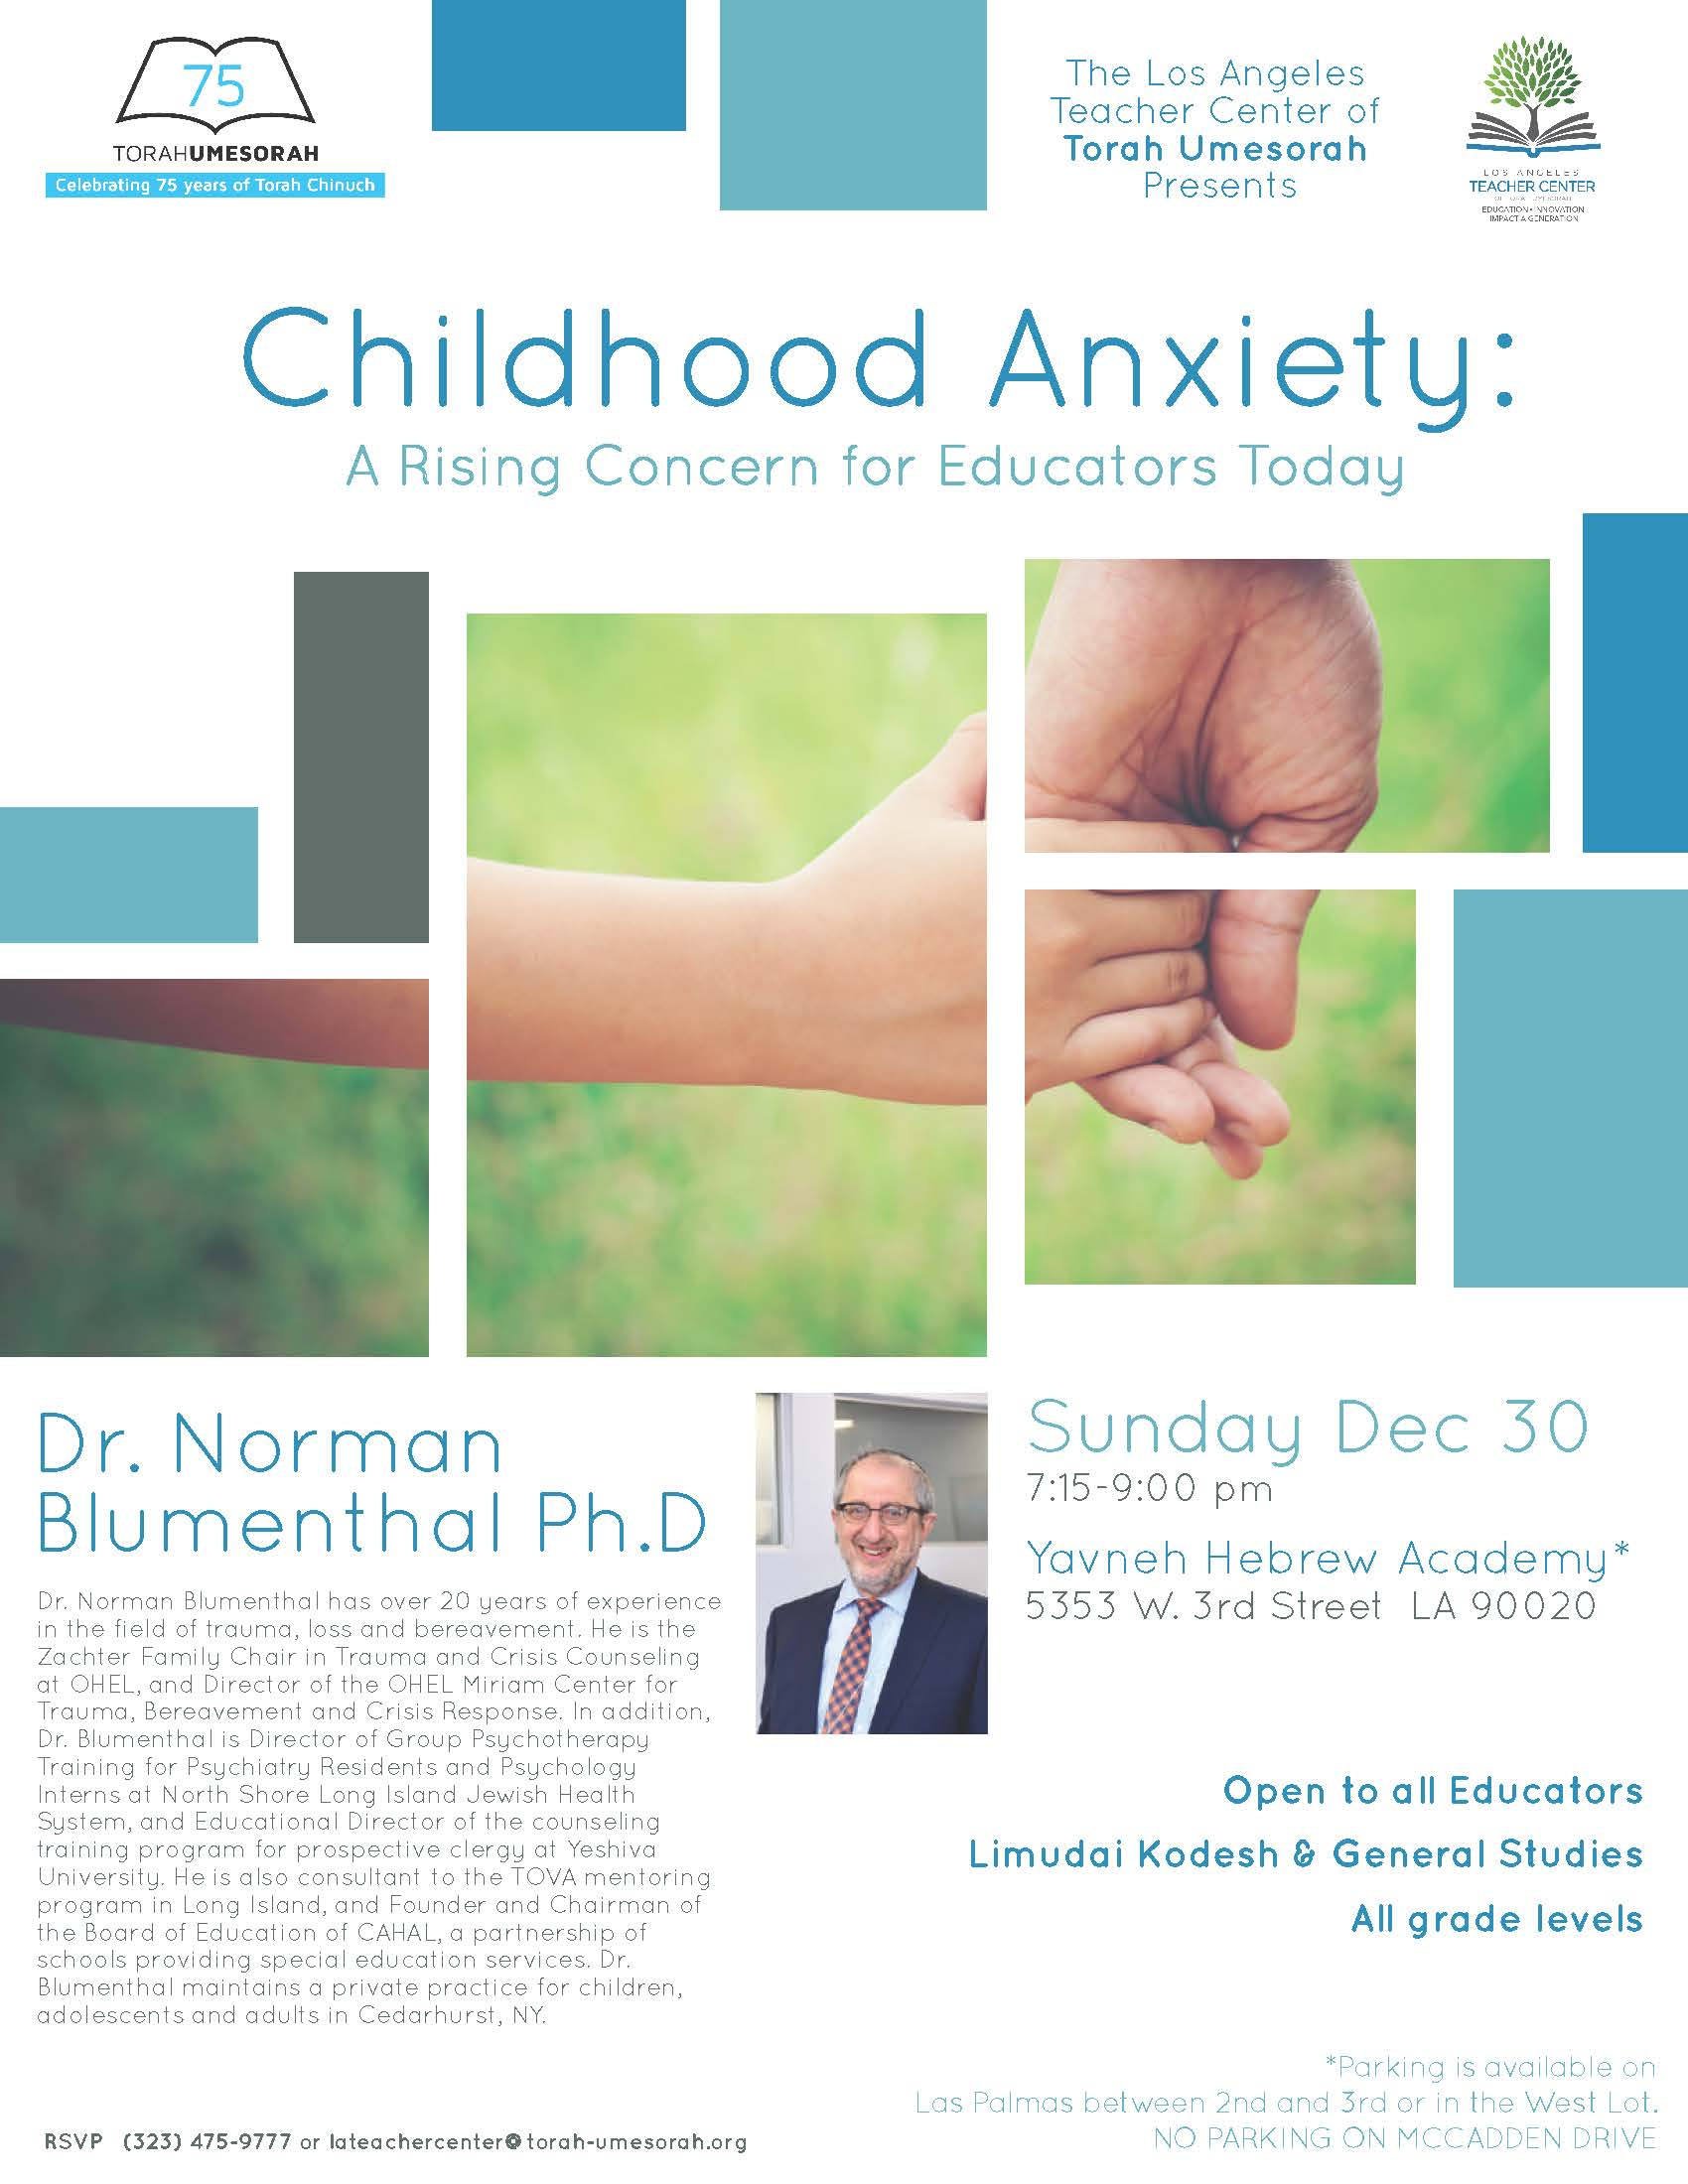 Childhood Anxiety: A Rising Concern for Educators Today